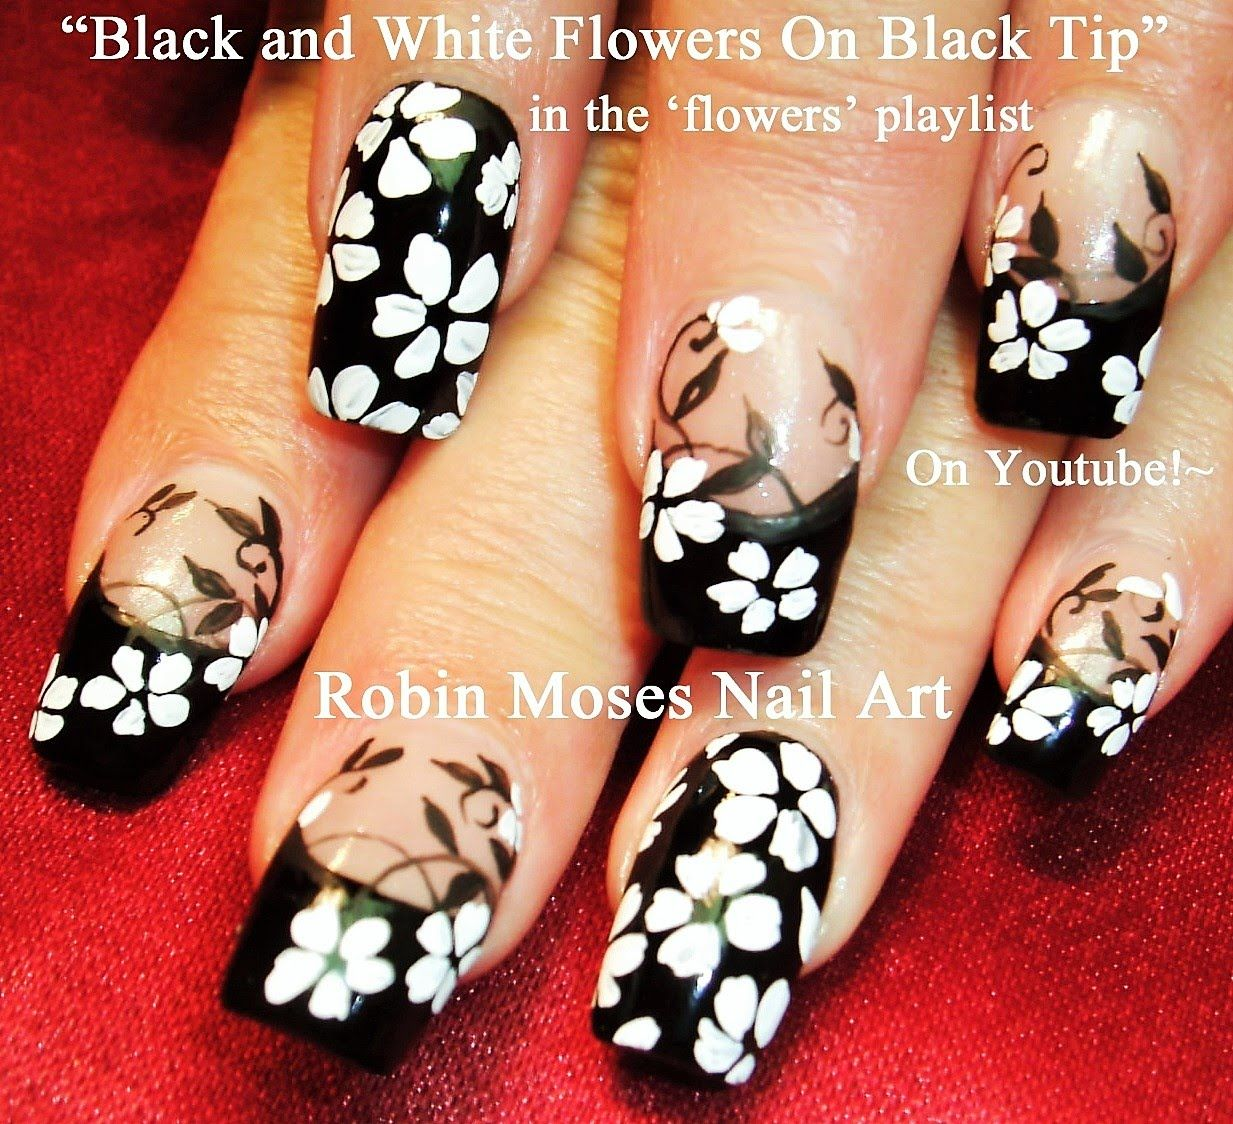 Simple Nail Art simple nail art flowers : Nail Art Tutorial | DIY Black and White Flower Nail Design ...